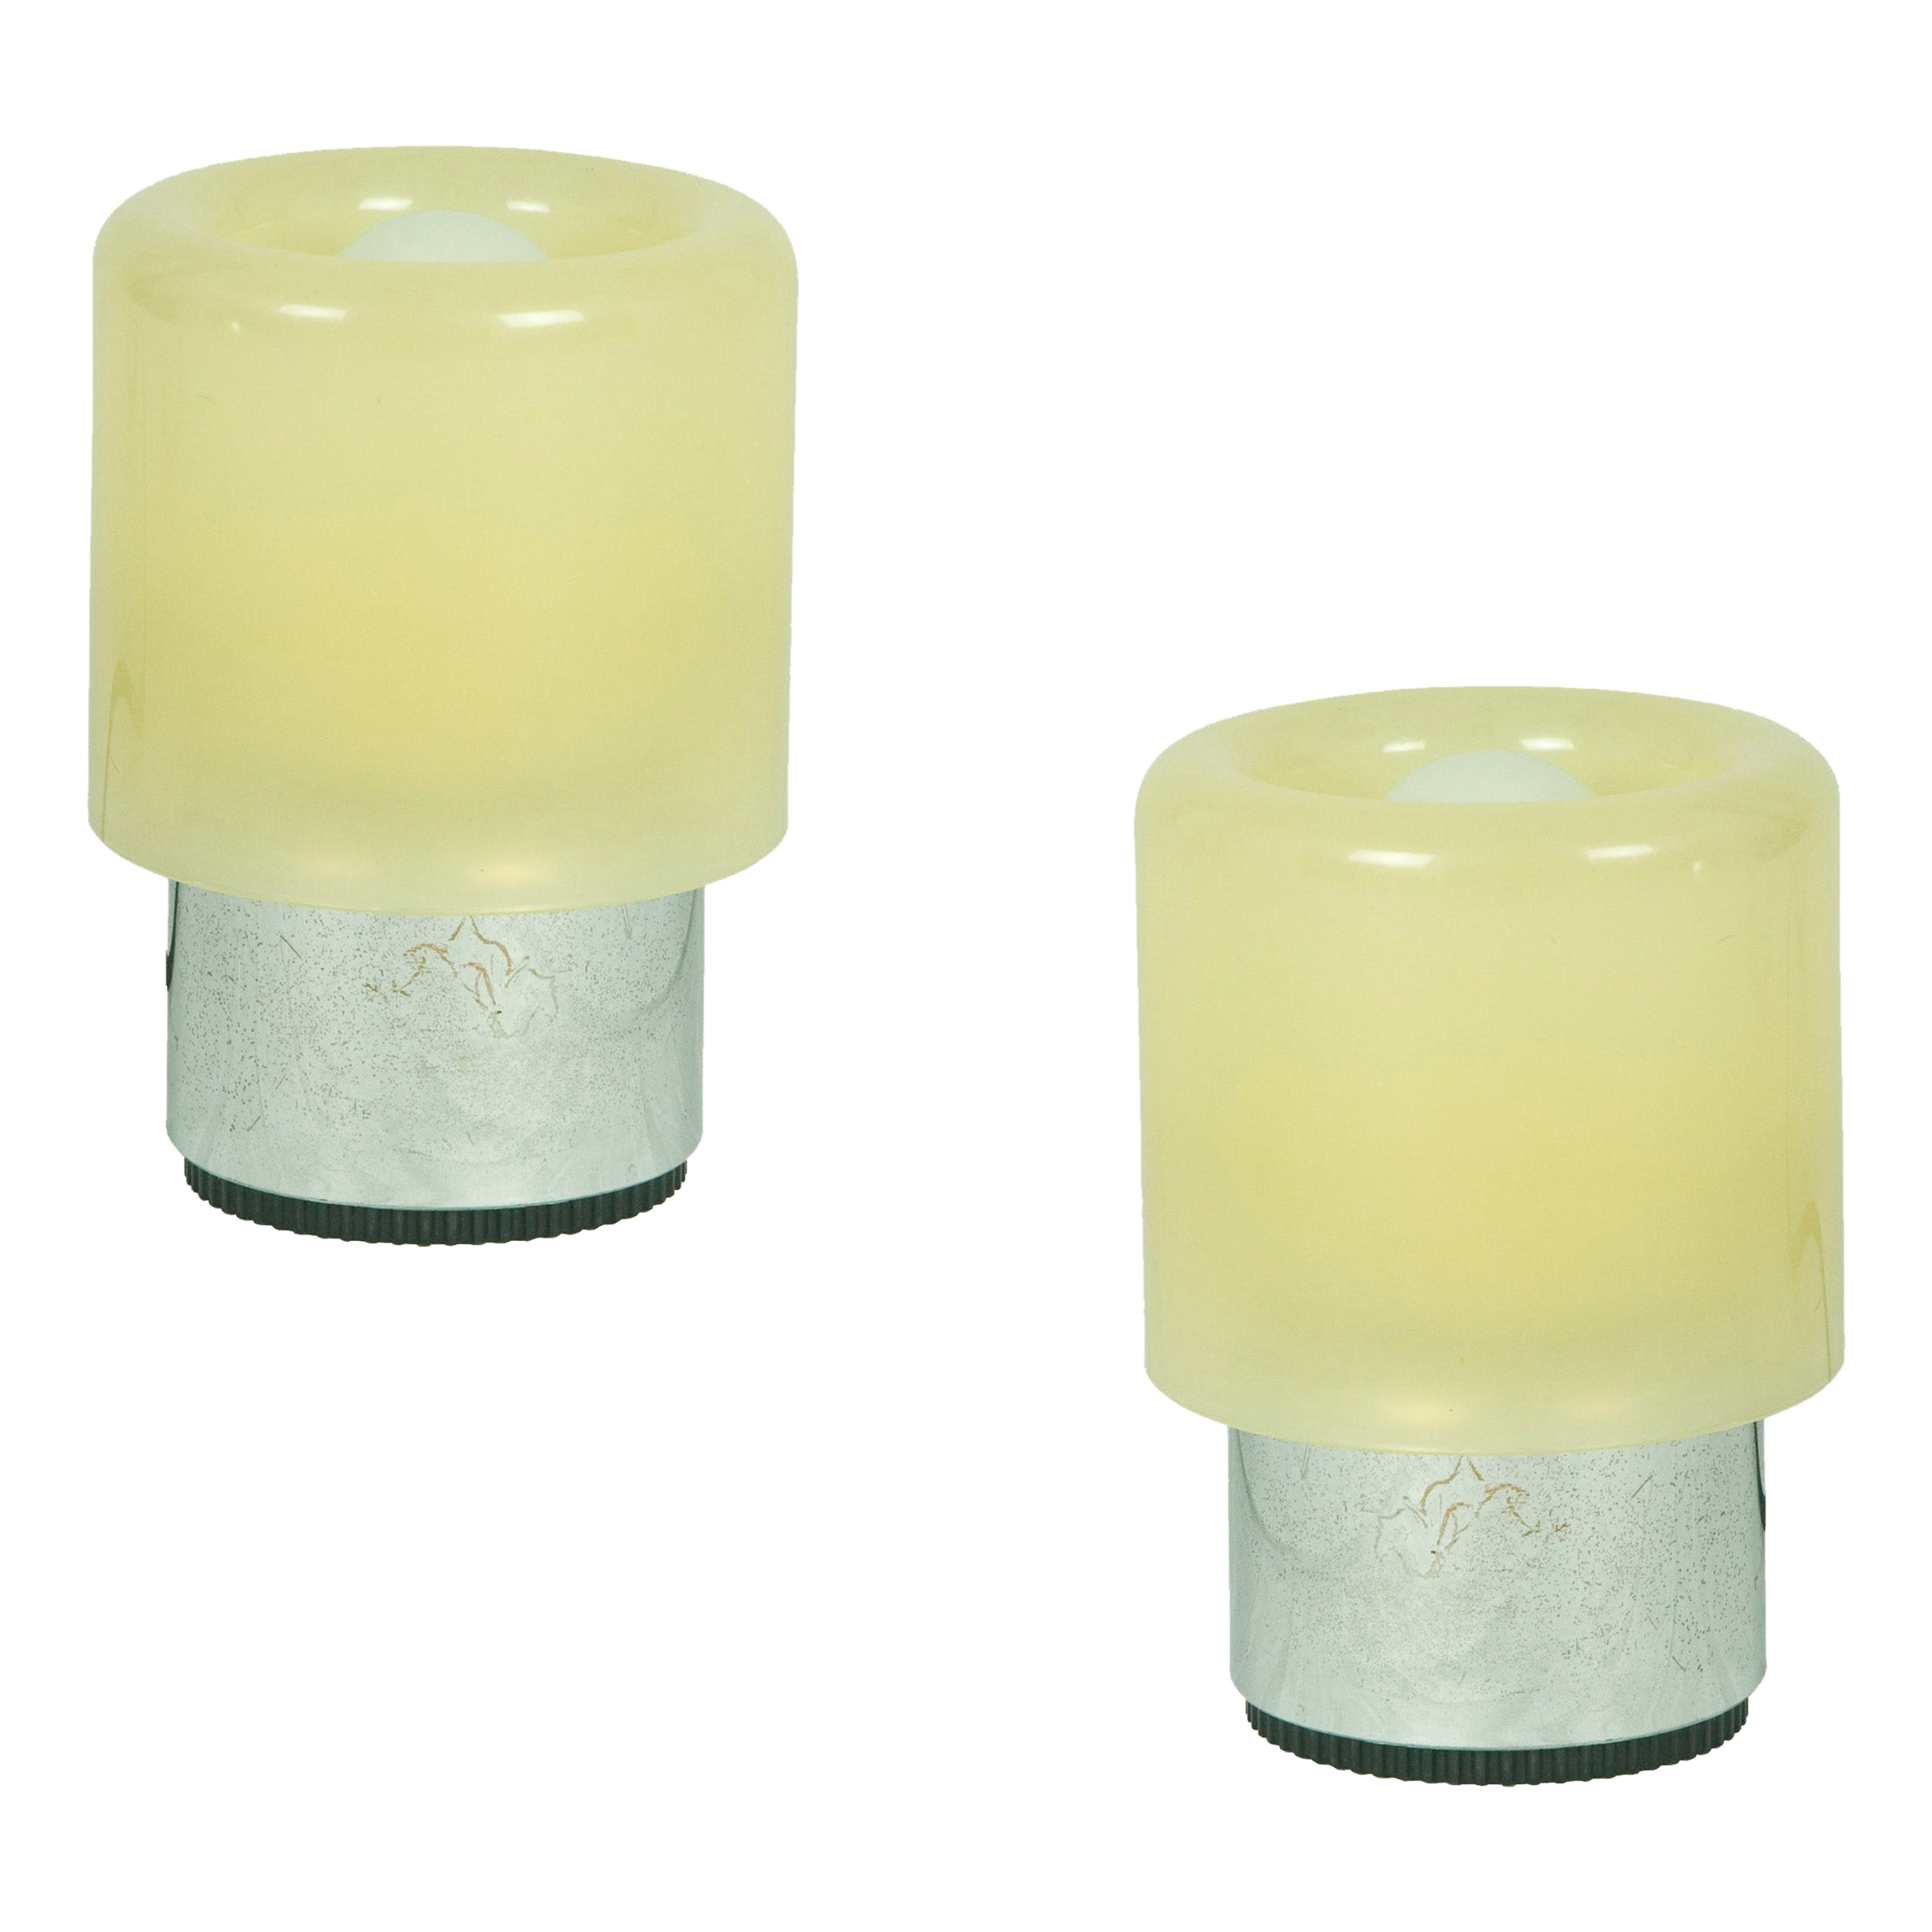 Pair of Vintage Plastic Tic Tac Table Lamps by Giotto Stoppino for Kartell, 1971